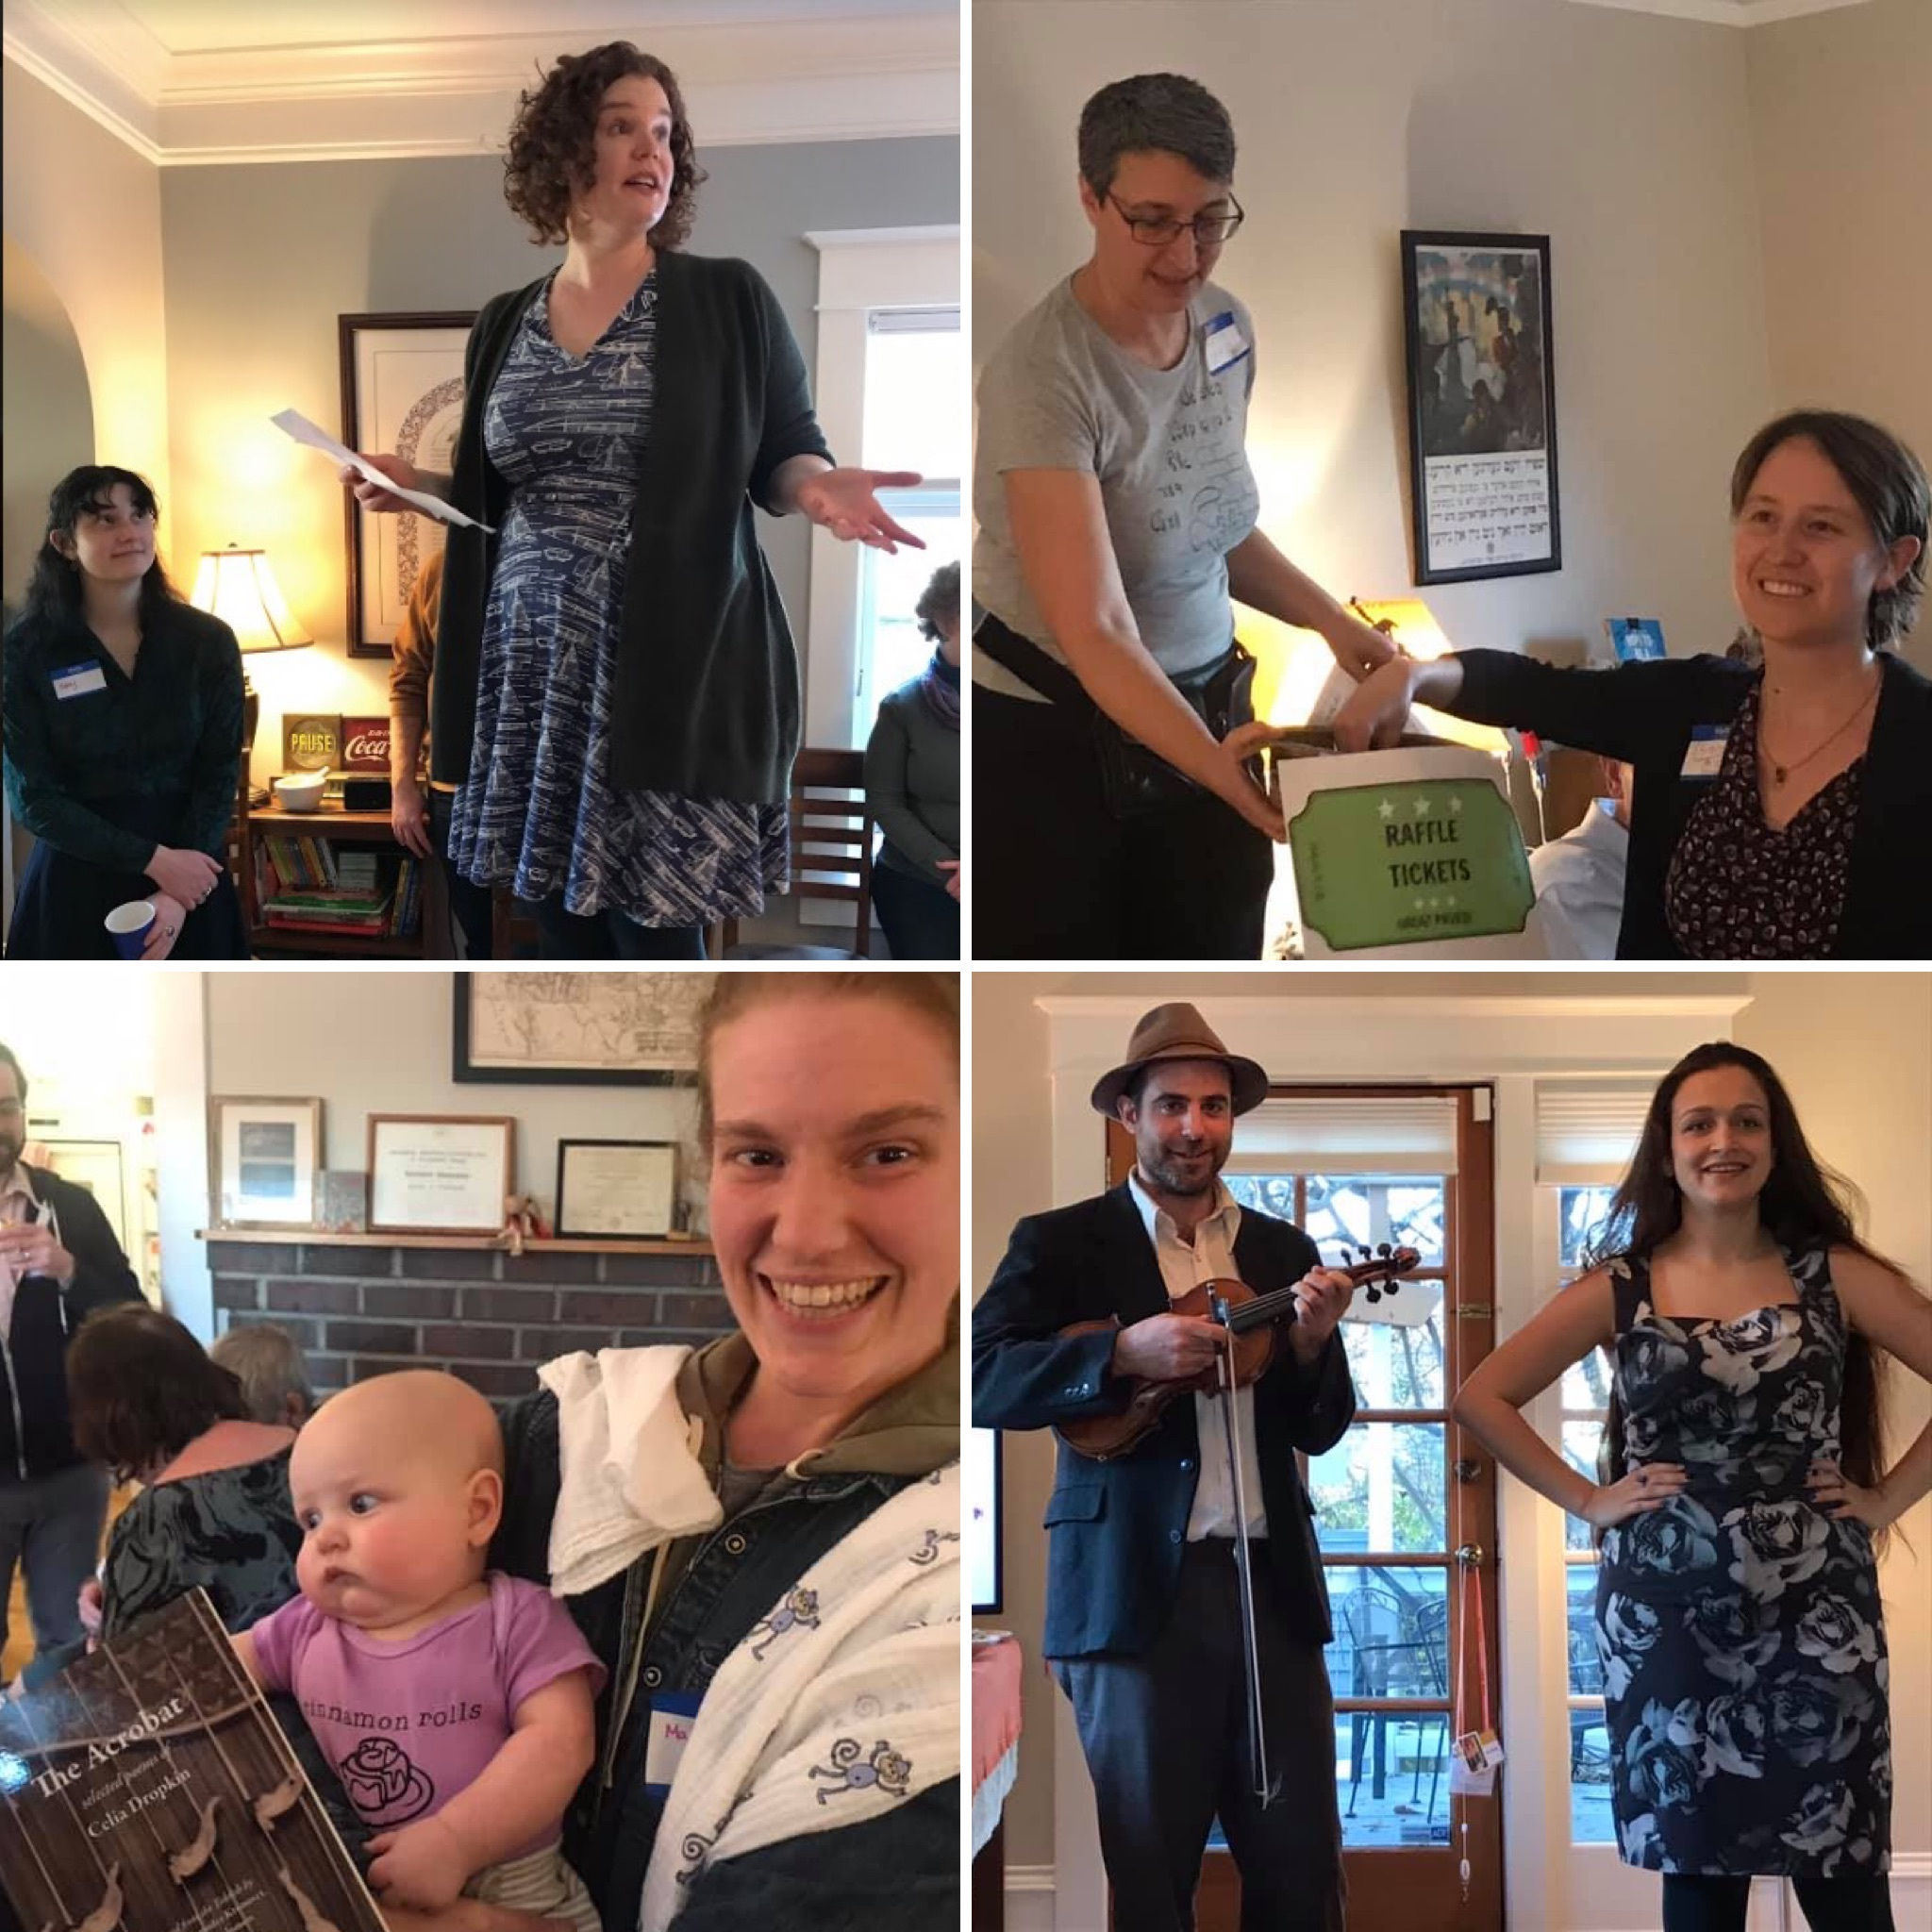 <p>At our Seattle party, clockwise from top left: editorial board member Sarah Zarrow explains the deal with <em>In geveb</em>; expert raffle organizer Faith Jones is assisted in the draw by Liora Halperin; Craig Judelman and Sasha Lurje perform; and young readers have their eyes opened by Celia Dropkin.</p>